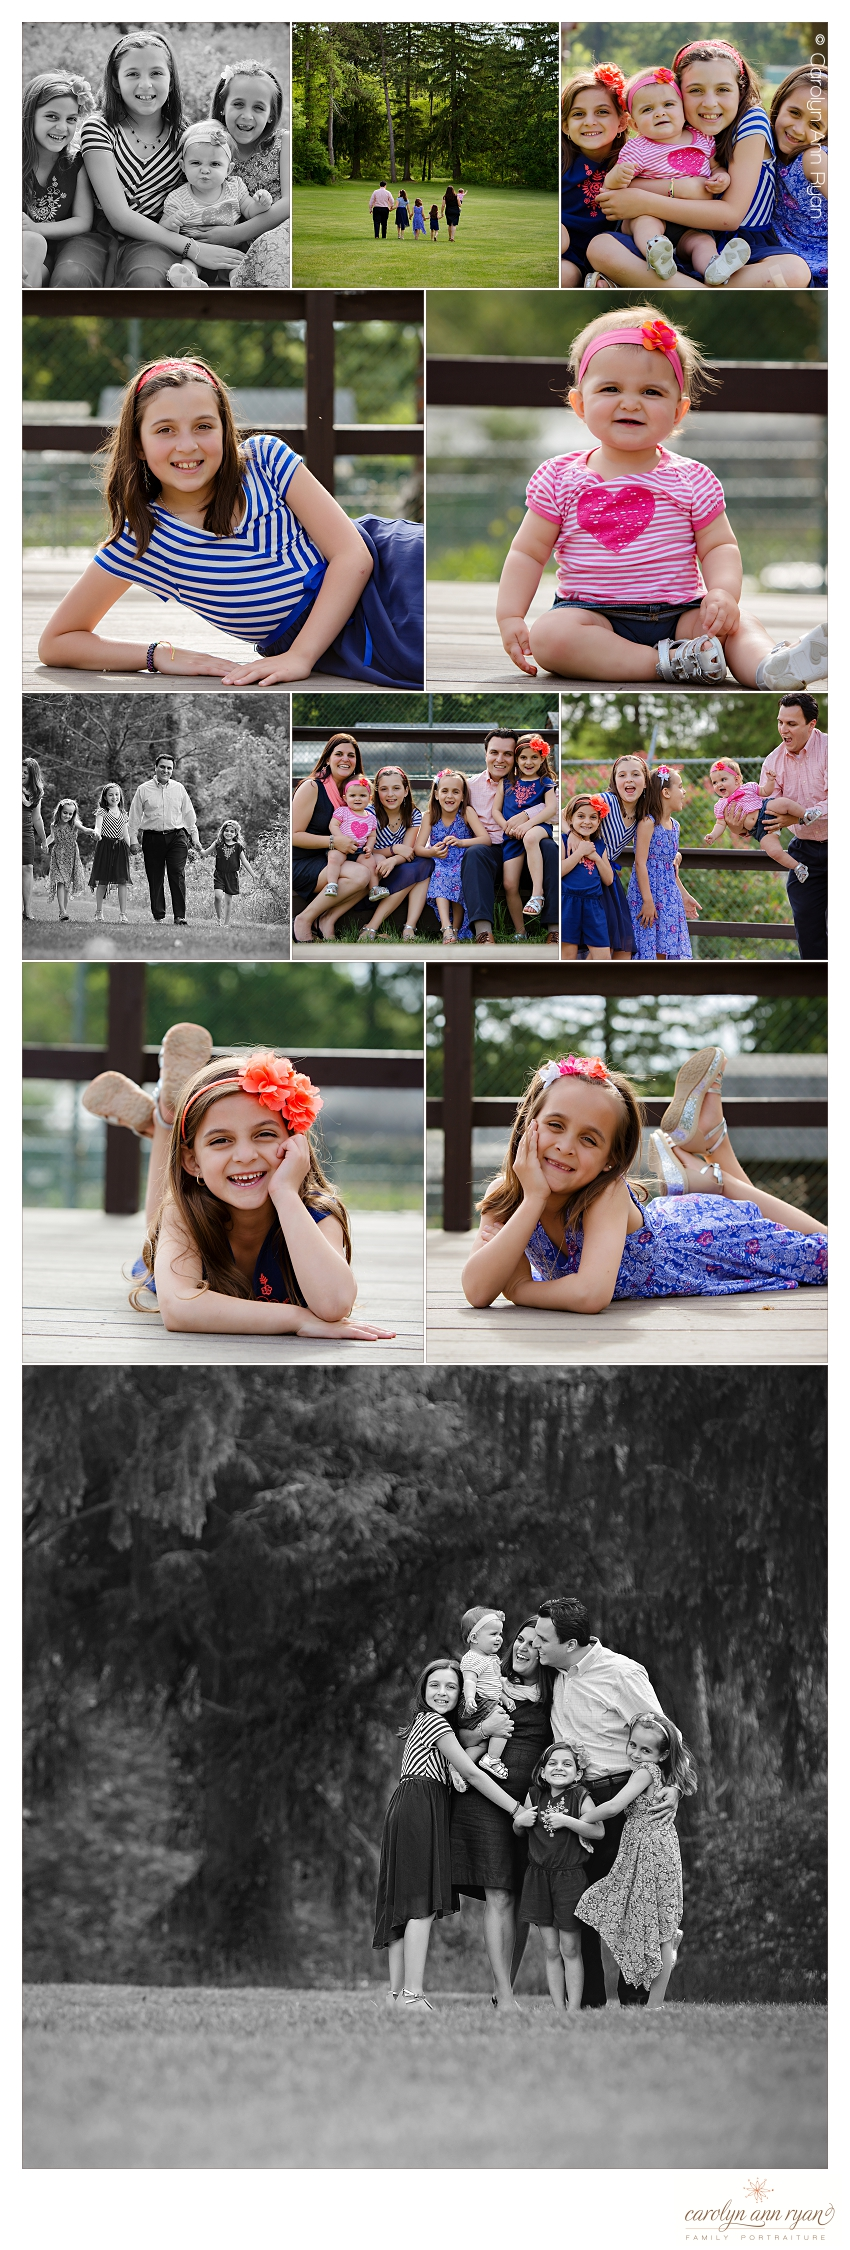 Charlotte NC Family Portrait Photographer creates beautiful portraits in the summer